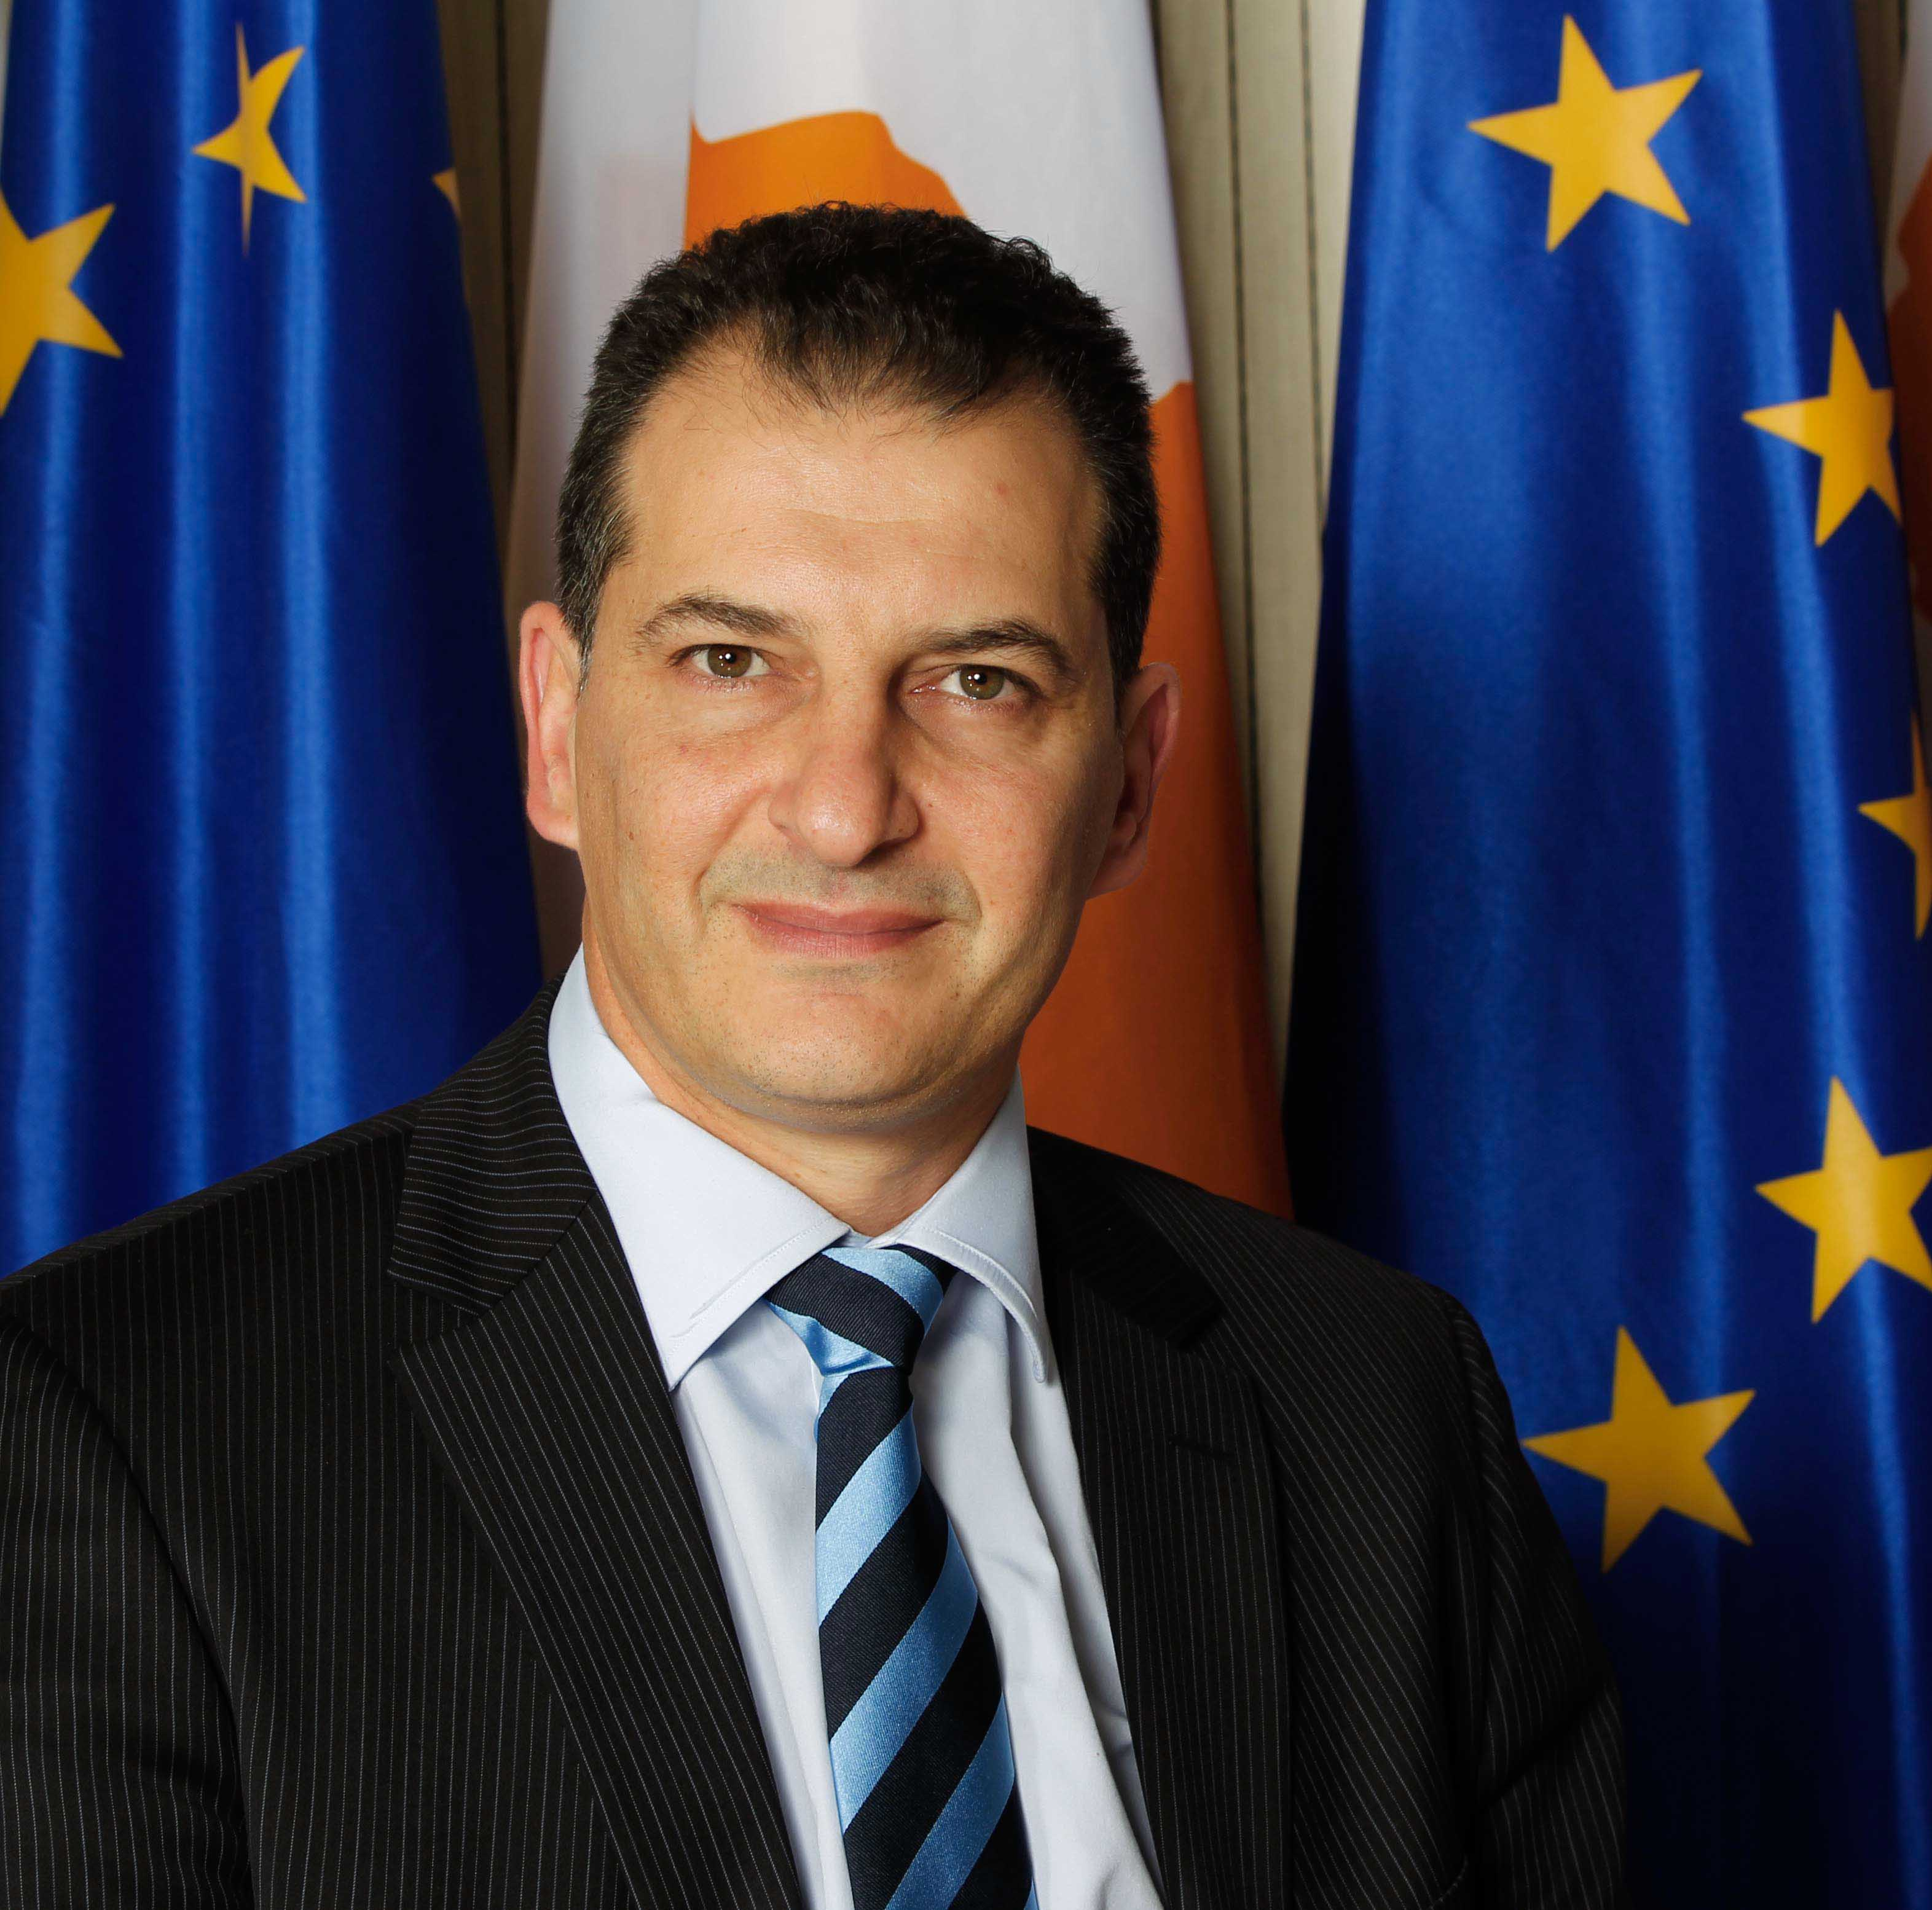 Cypriot Energy Minister to participate in the Ministerial e-Government Conference in Tallinn